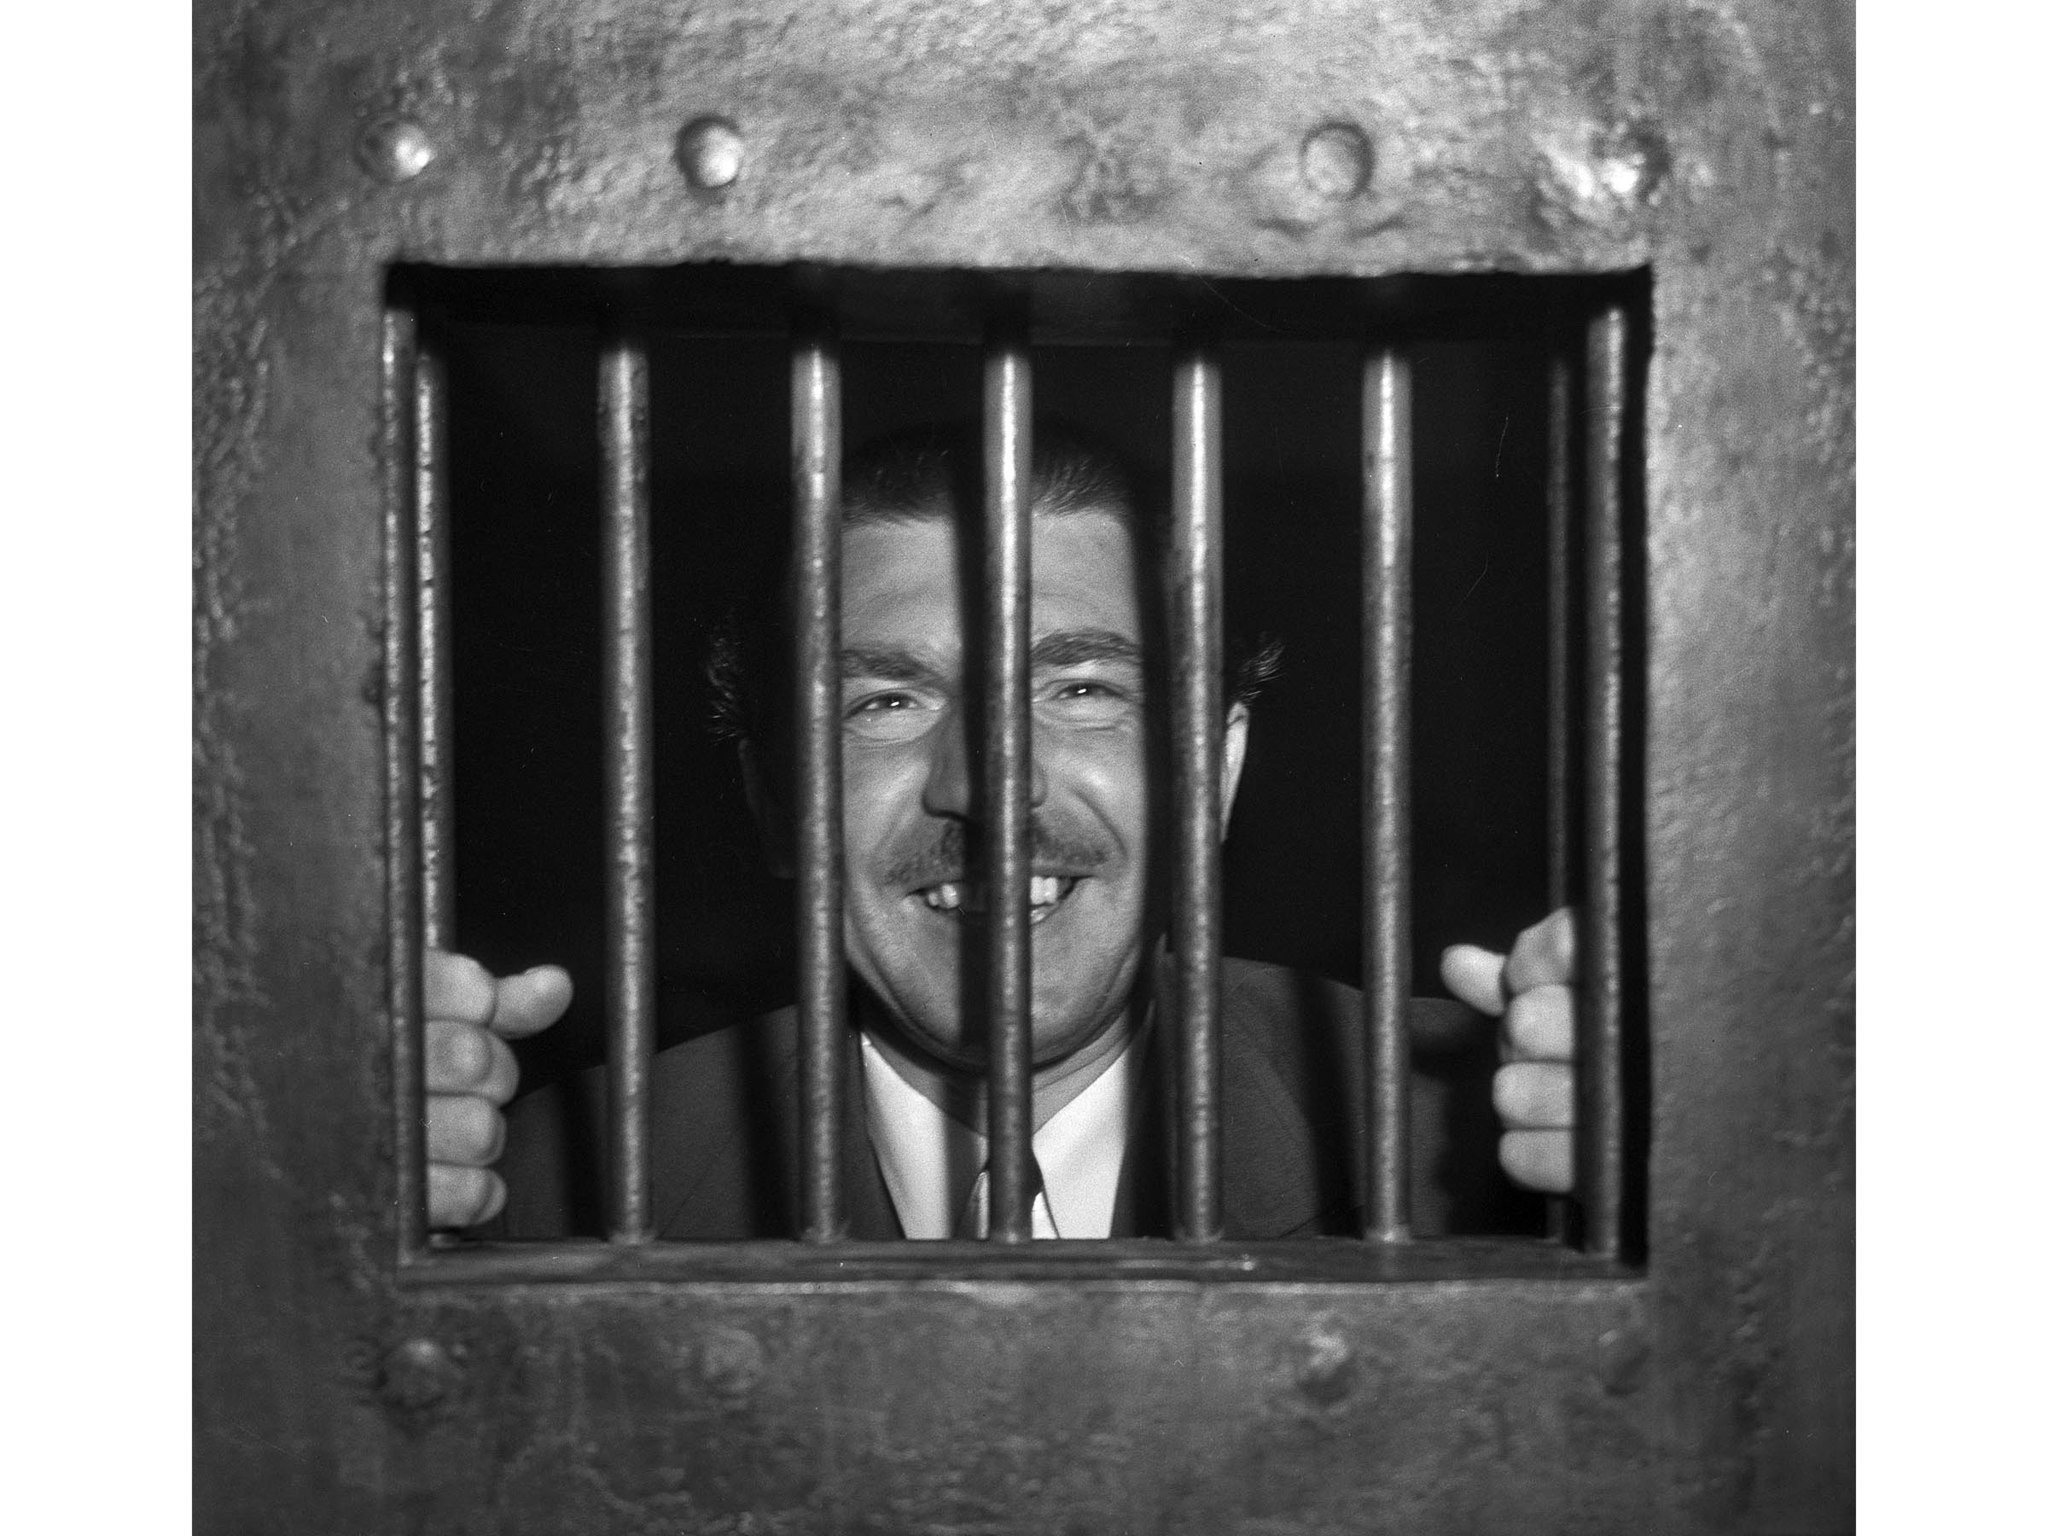 April 10, 1936: Andrew Schwarzman, writer, is shown behind bars after disturbing the peace. He was s